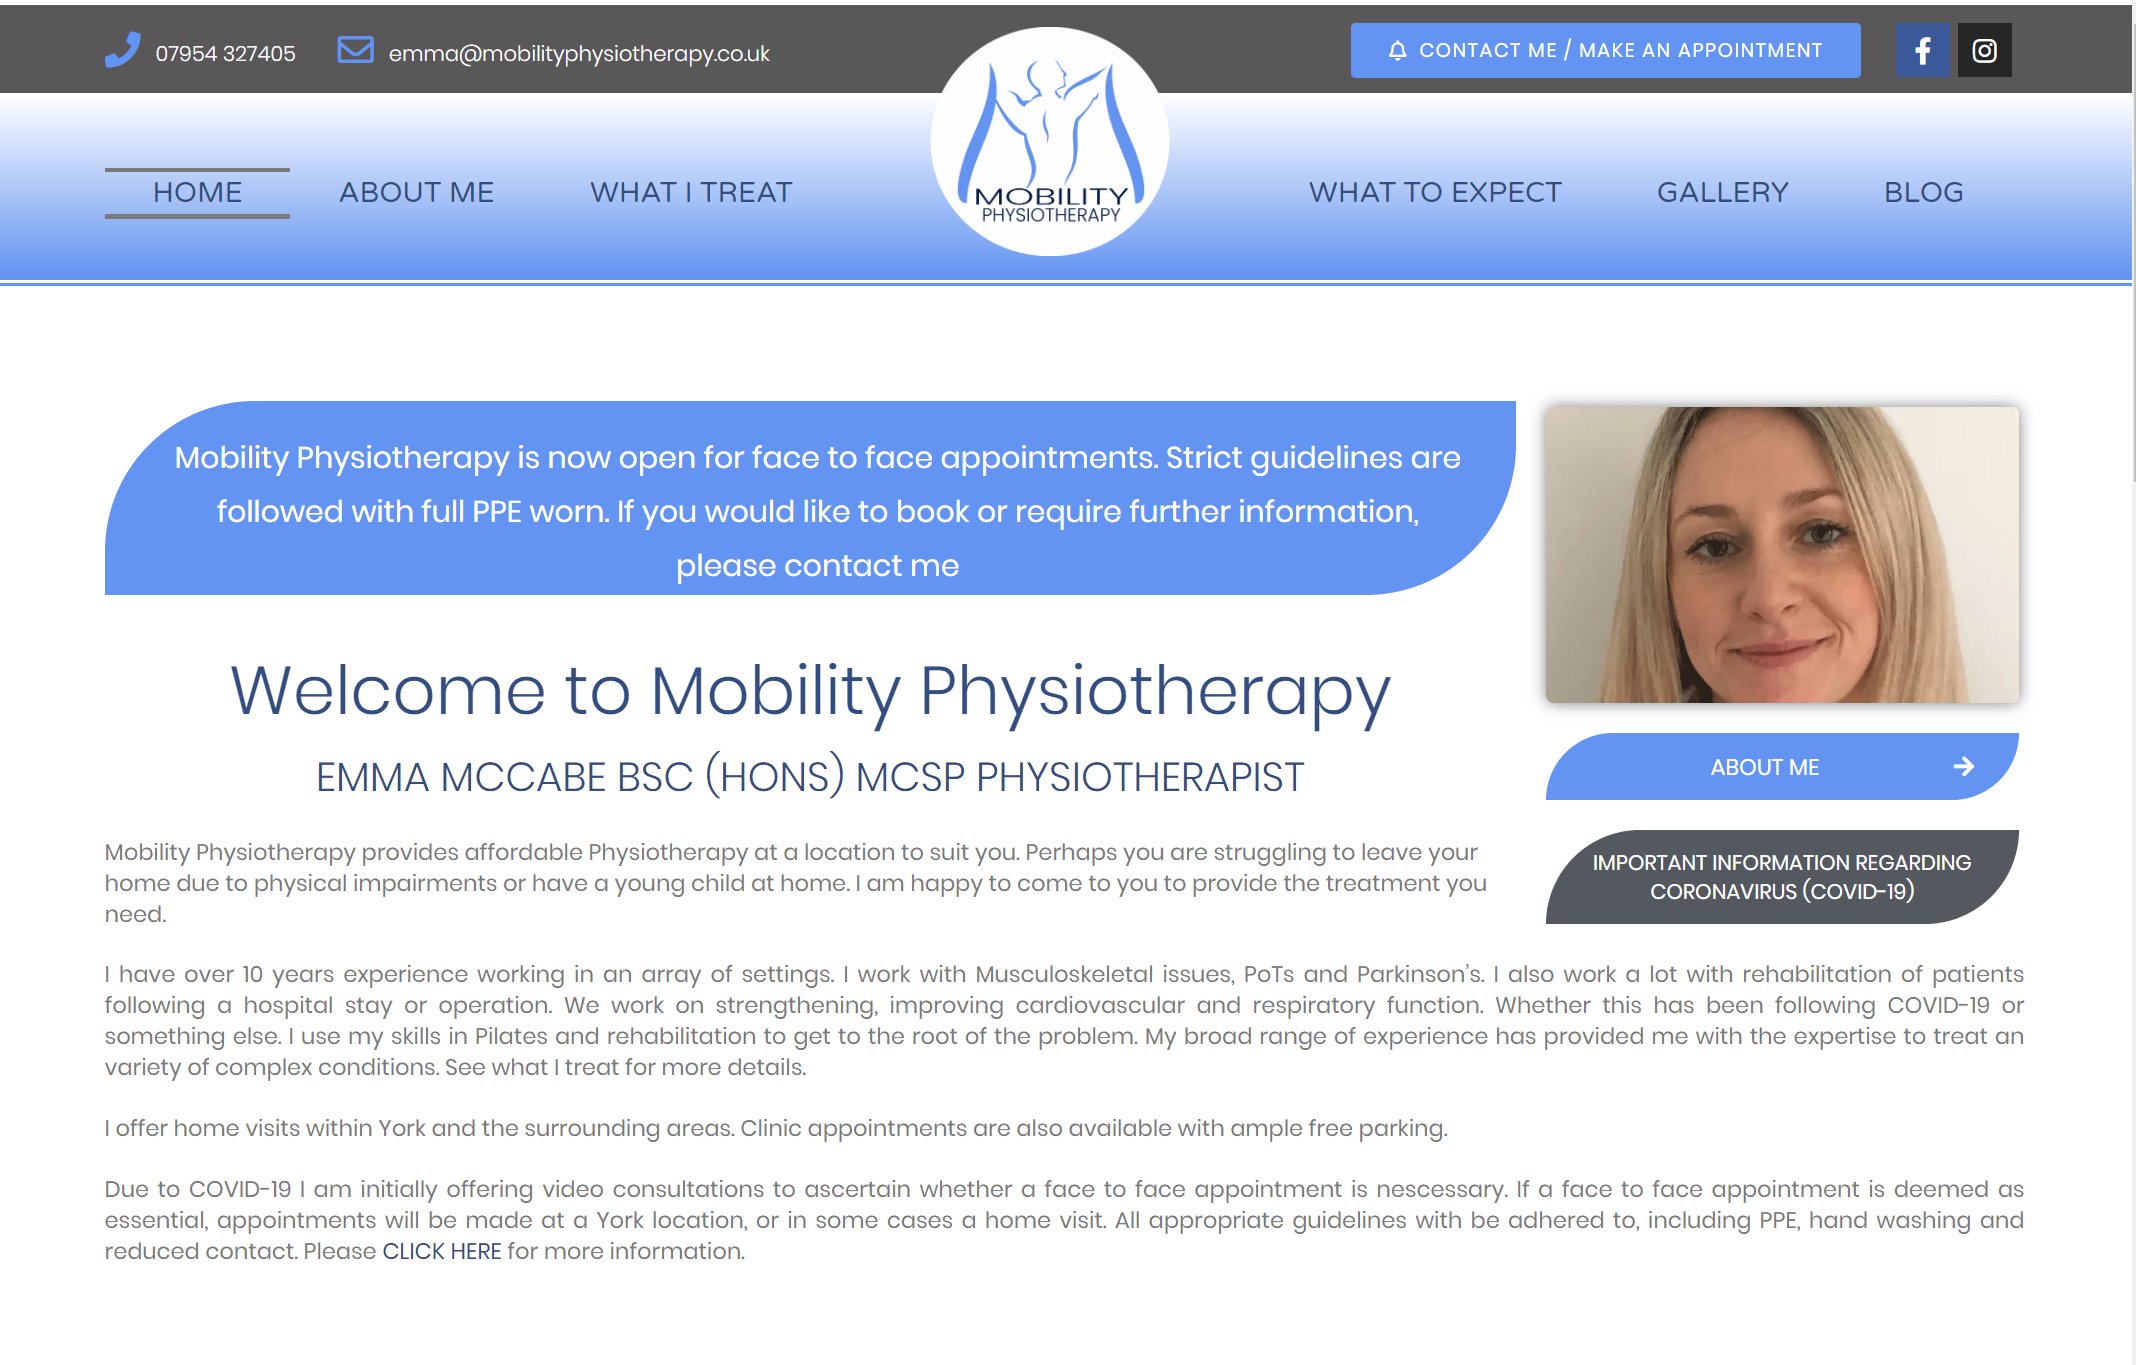 Mobility Physiotherapy